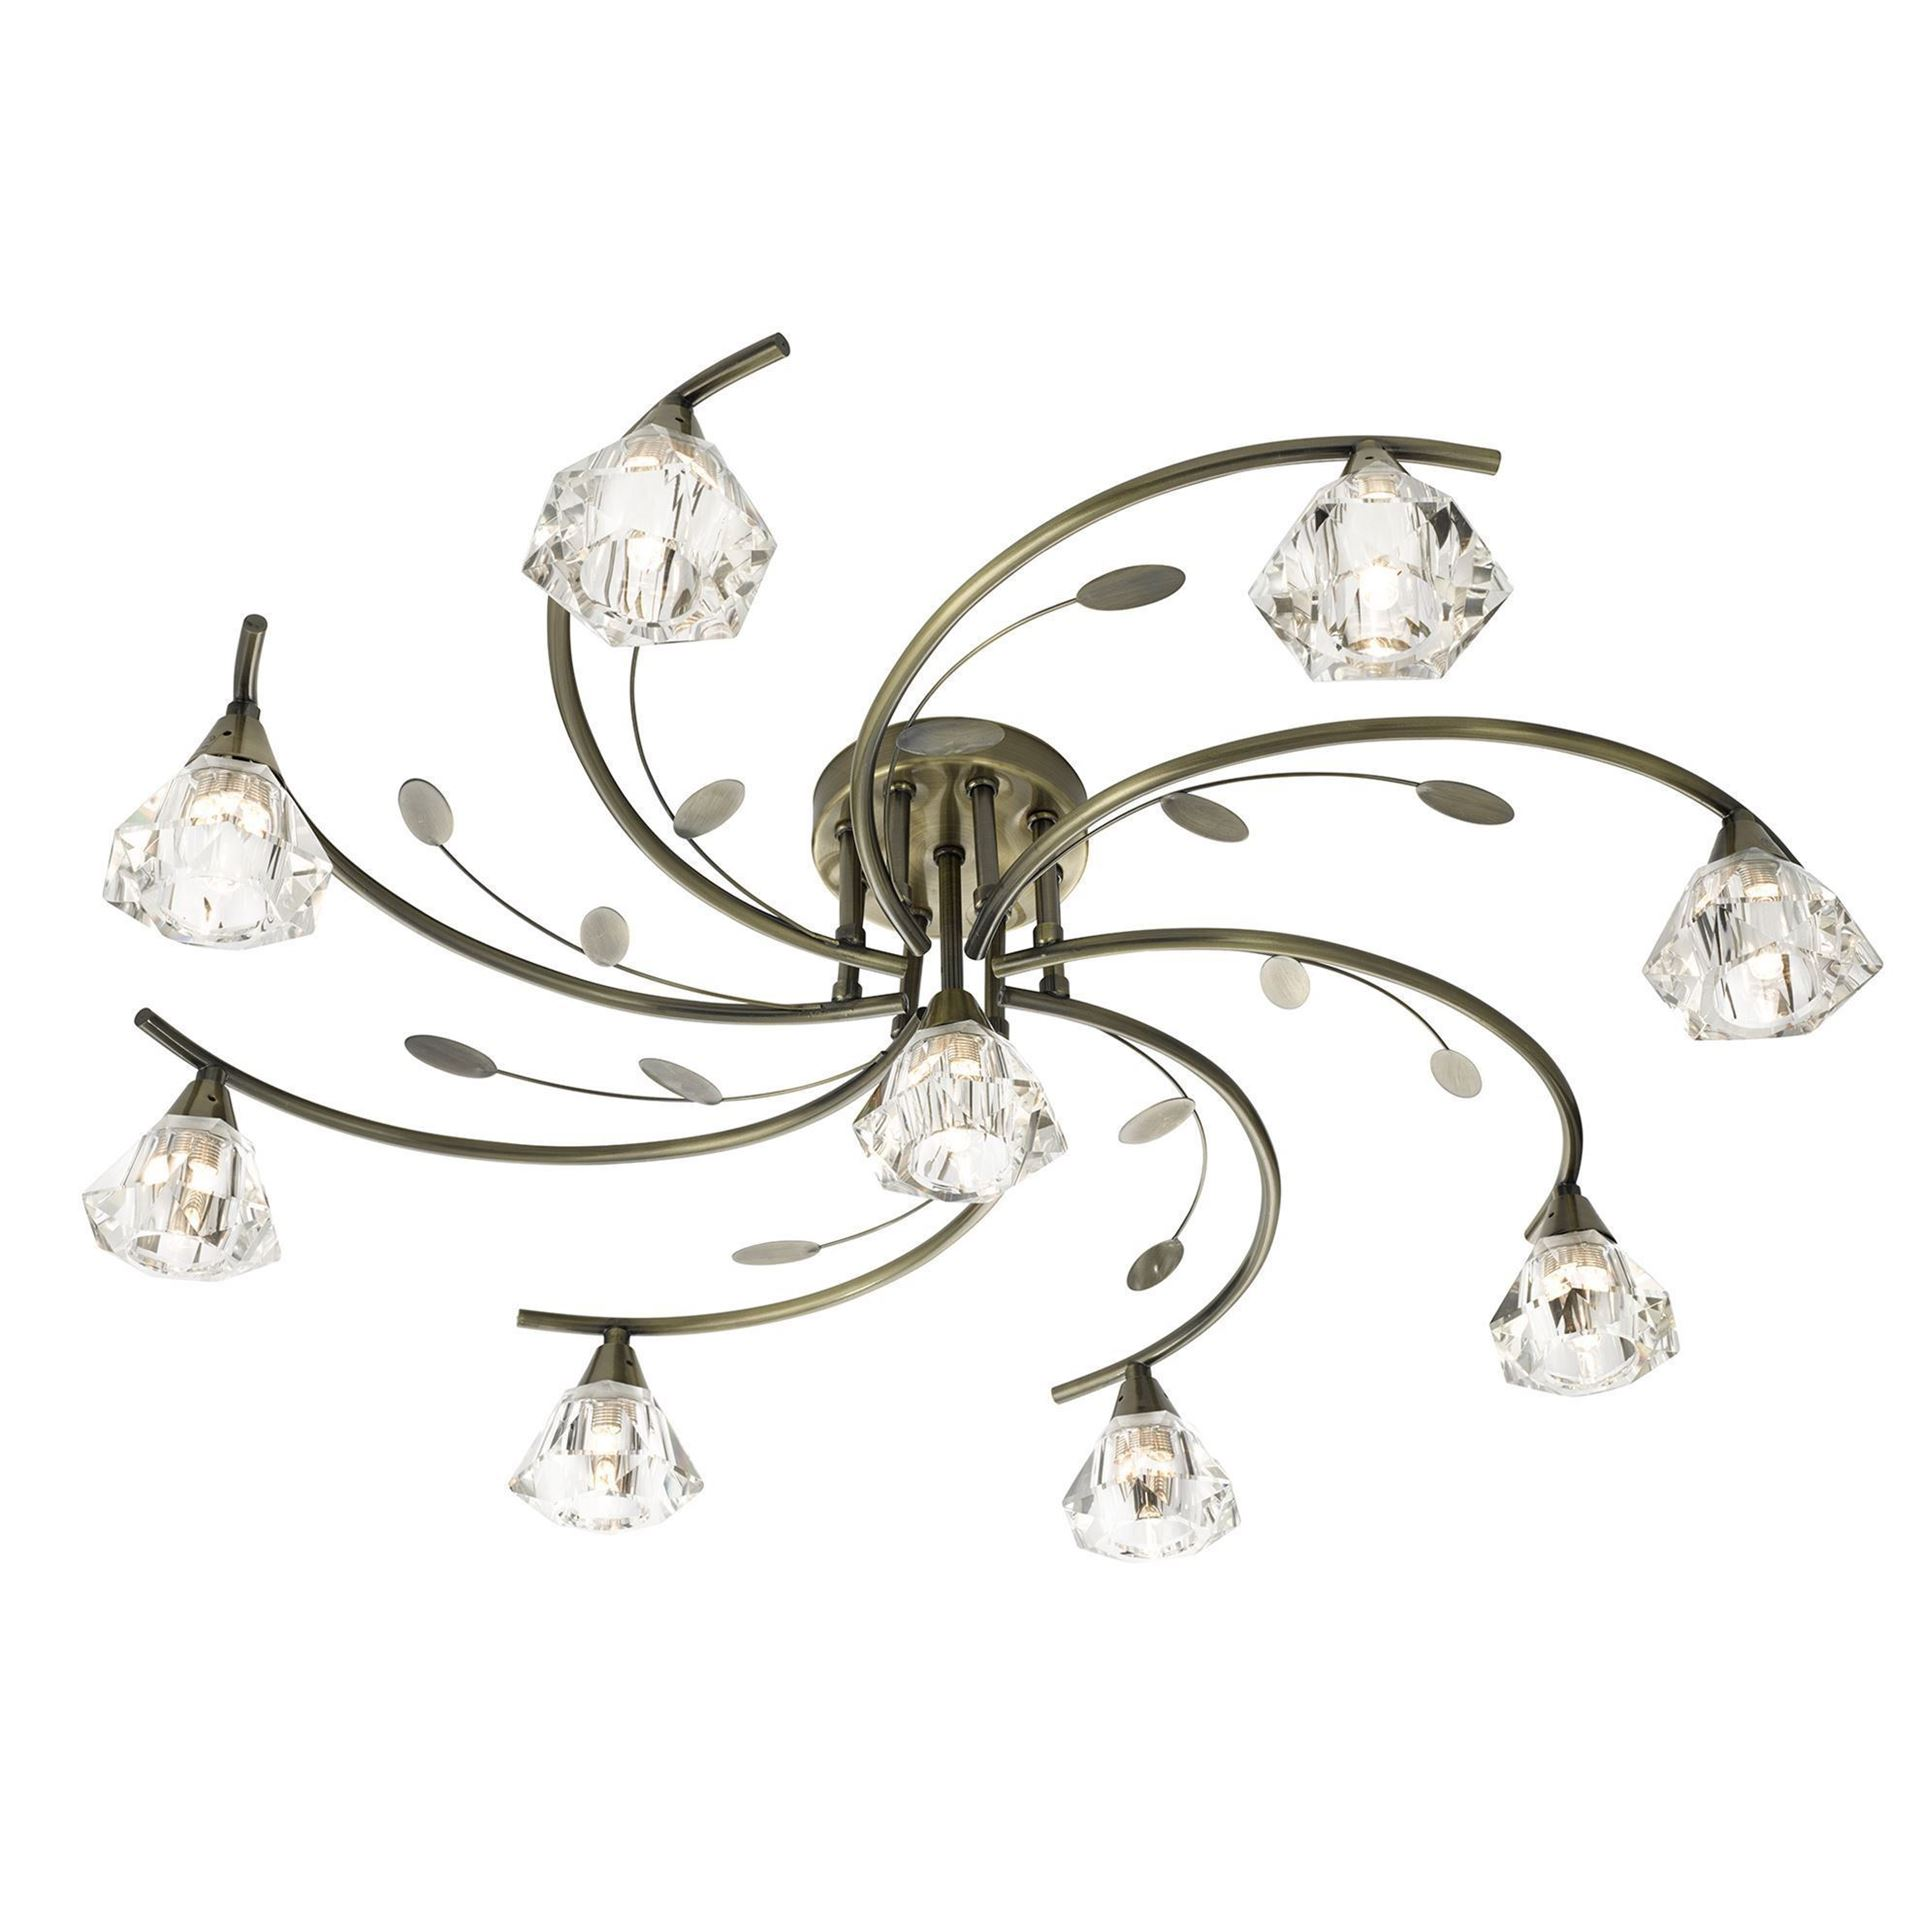 SIERRA ANTIQUE BRASS 9 LIGHT SEMI-FLUSH FITTING WITH SCULPTURED GLASS SHADES 2639-9AB